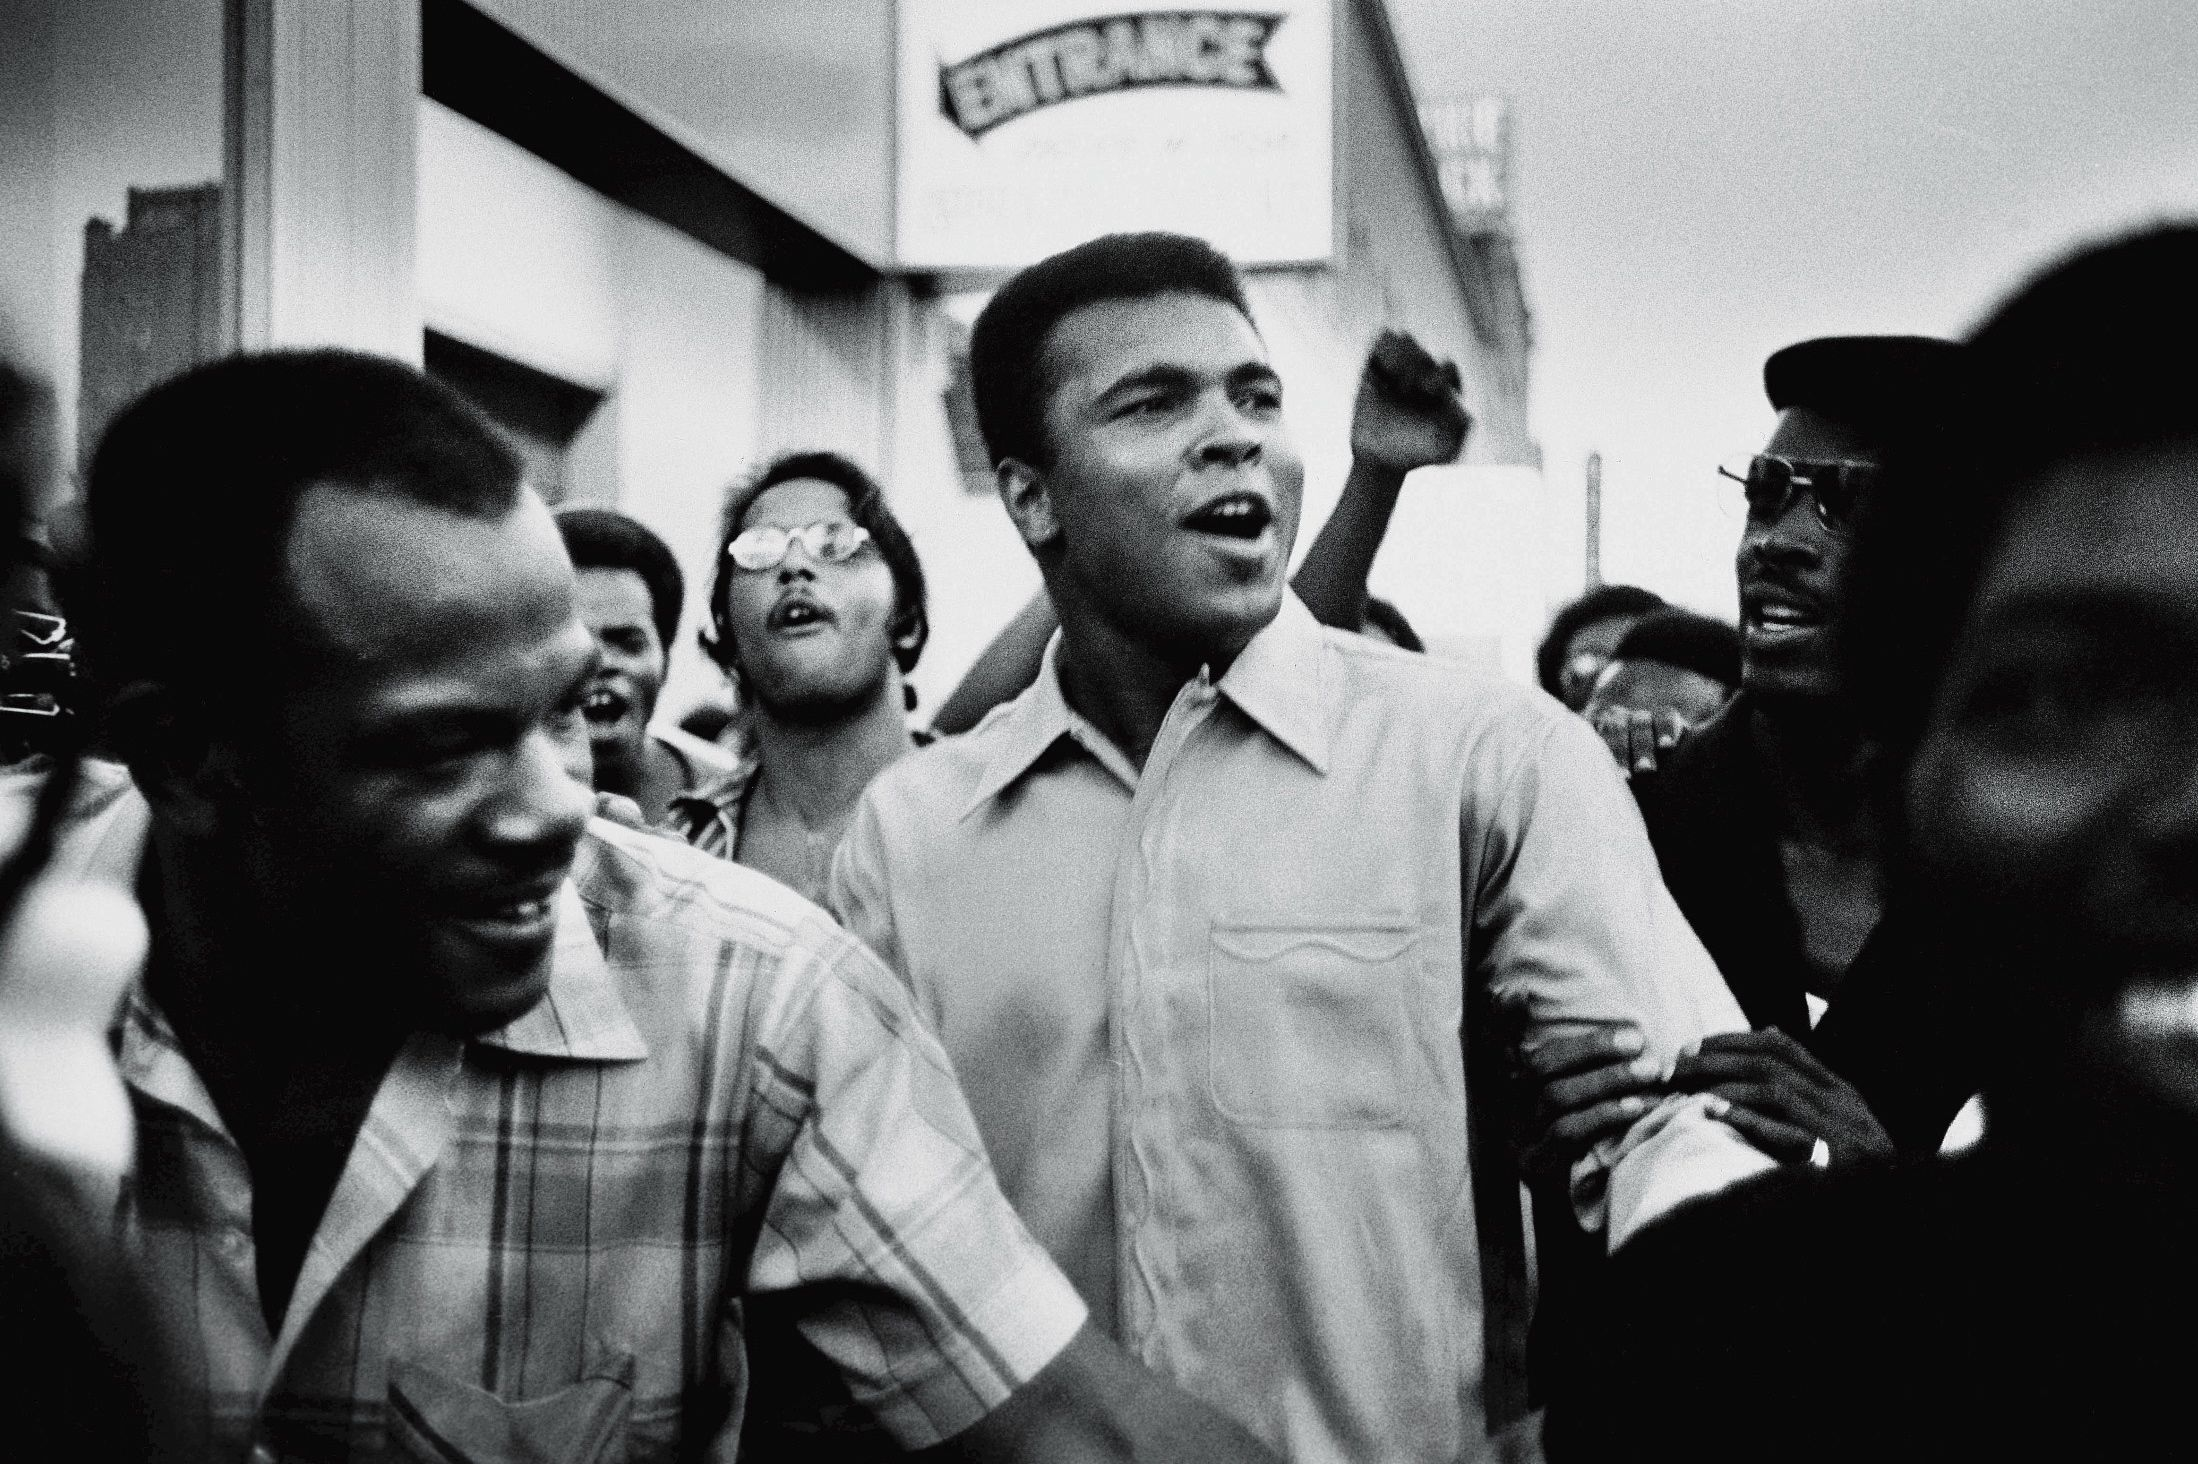 ", Director Bill Siegel Discusses Documentary ""The Trials Of Muhammad Ali"", Life+Times"